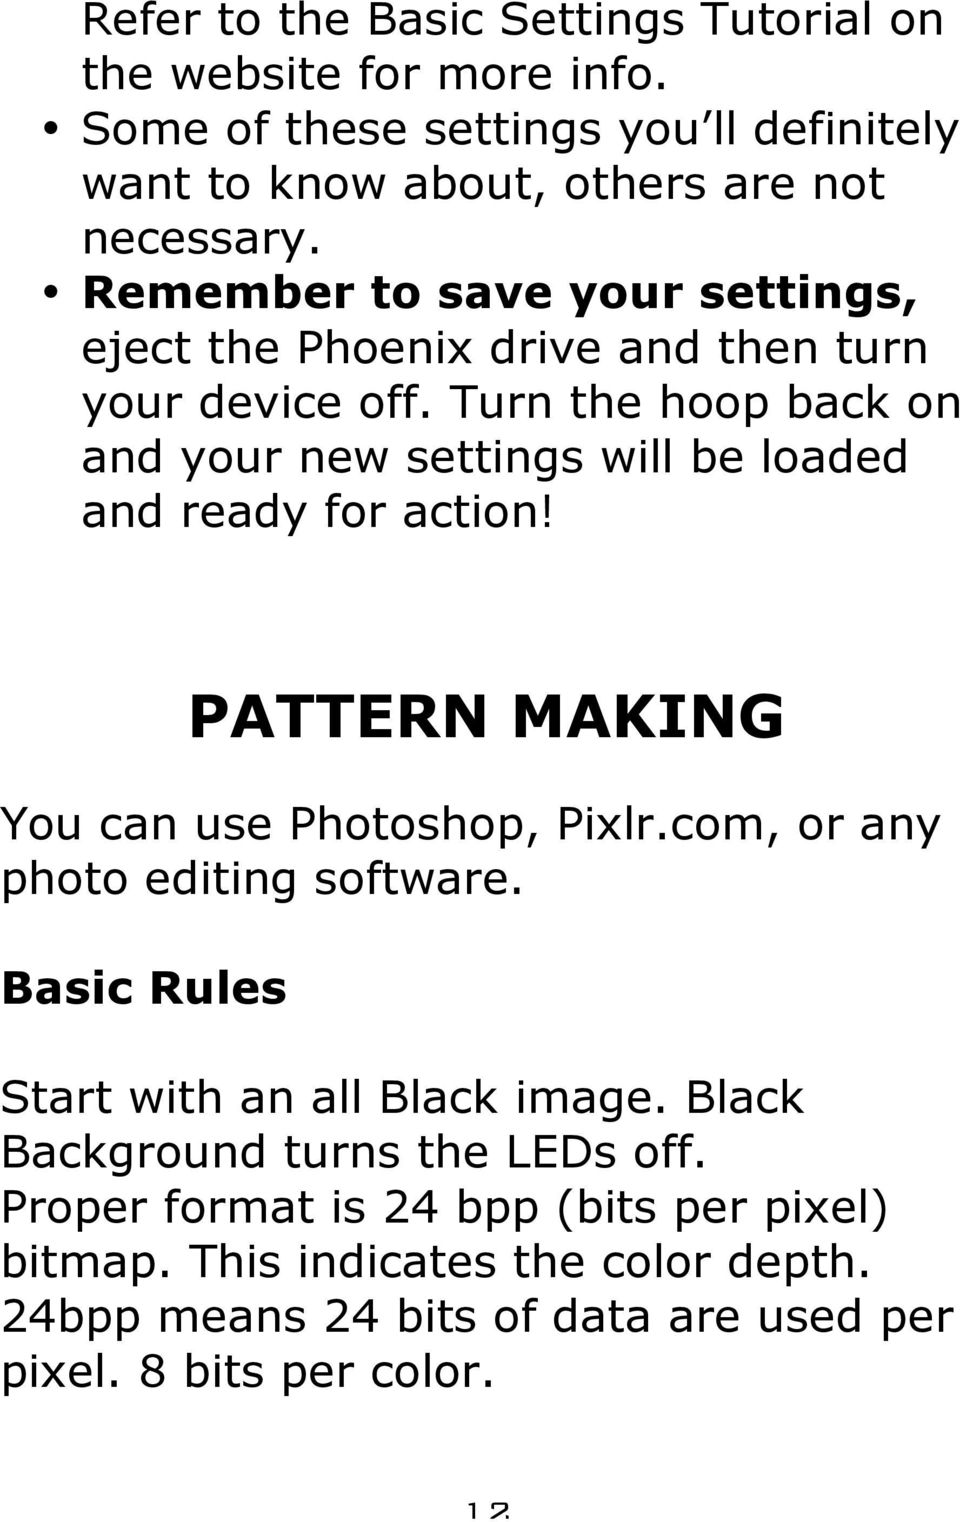 Turn the hoop back on and your new settings will be loaded and ready for action! PATTERN MAKING You can use Photoshop, Pixlr.